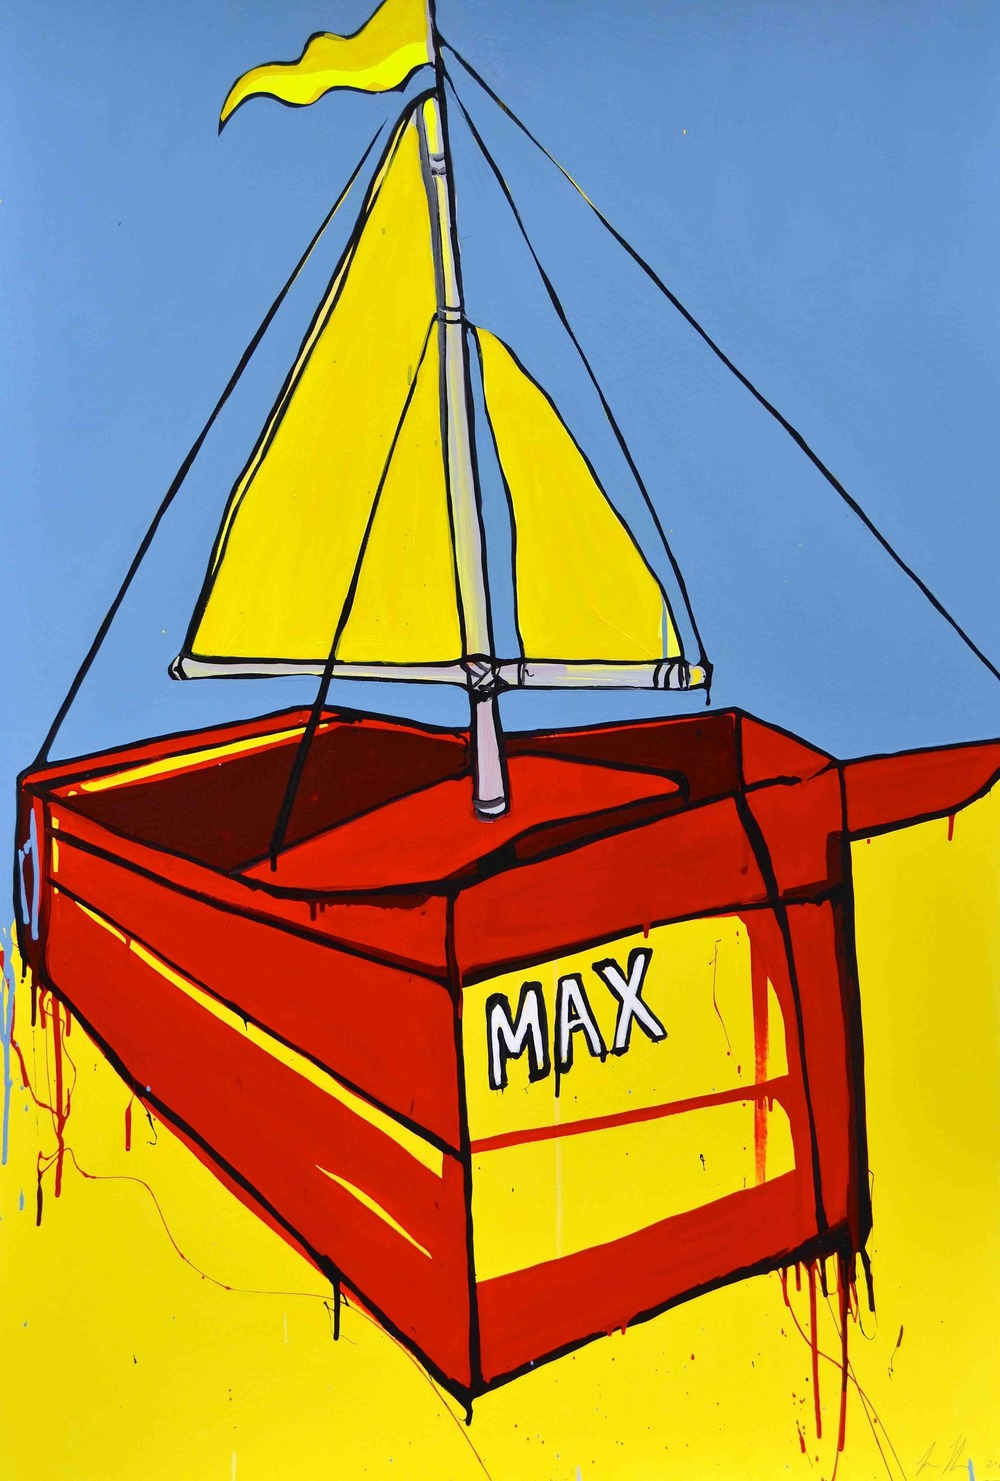 Jasper Knight - Max's private boat (Where the Wild Things Are)- small jpeg